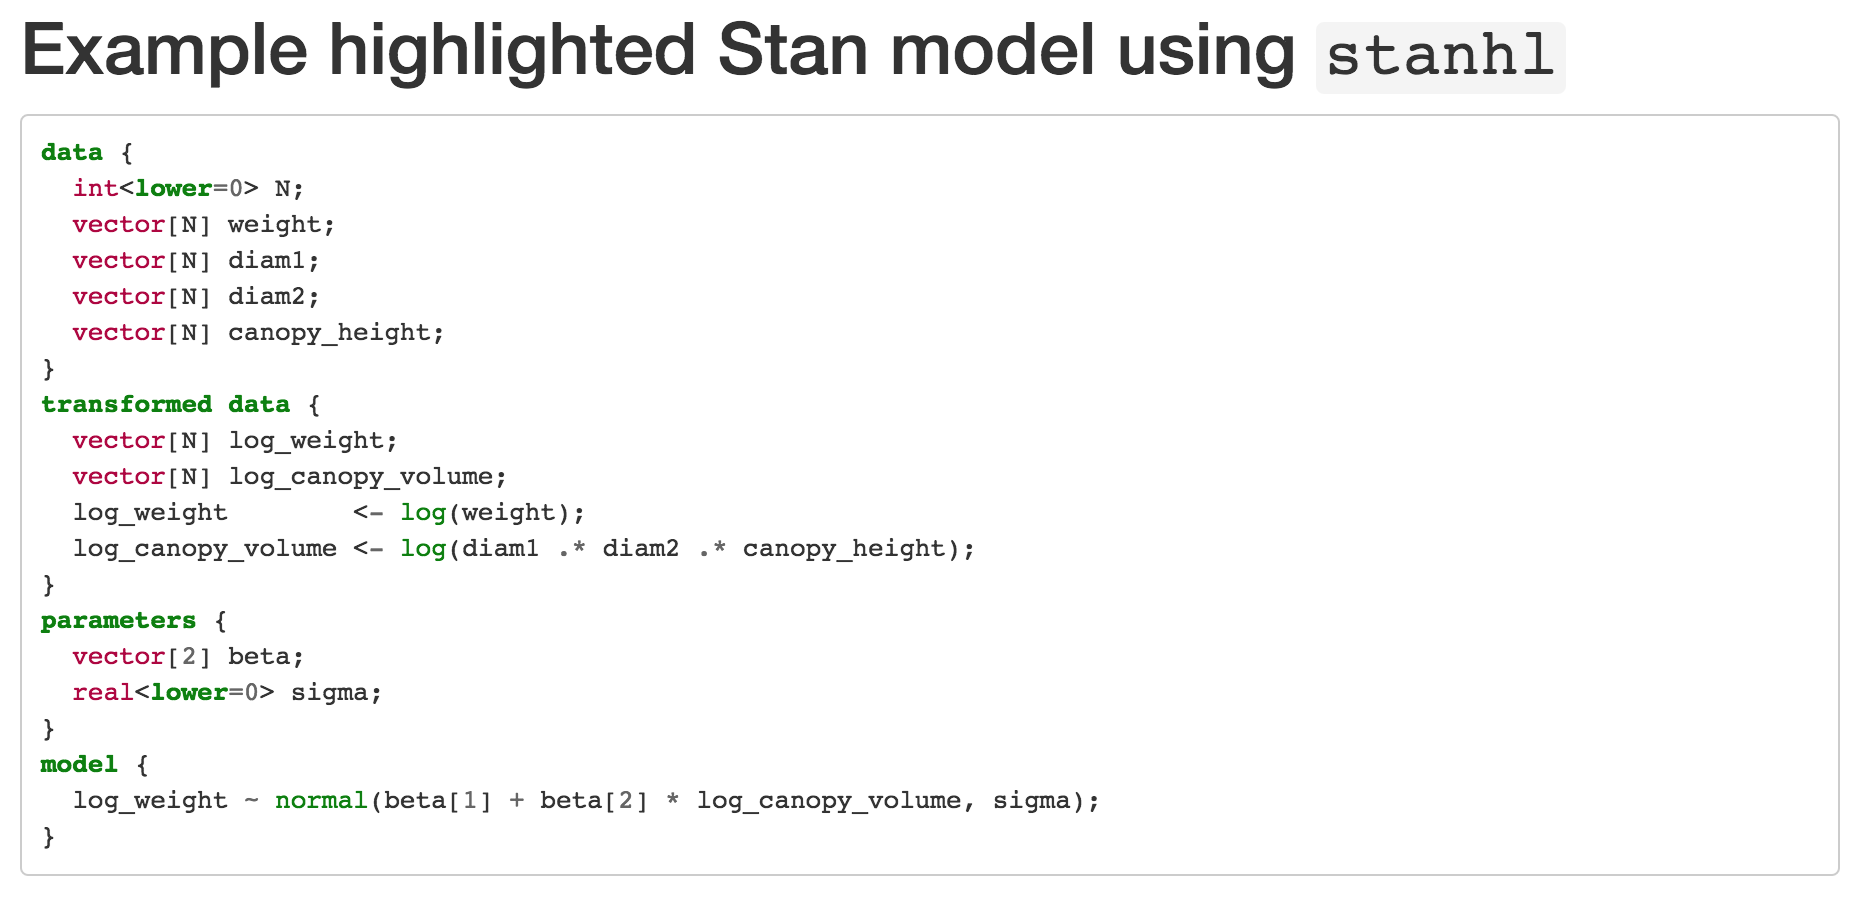 A screenshot of stanhl syntax highlighting in an HTML document